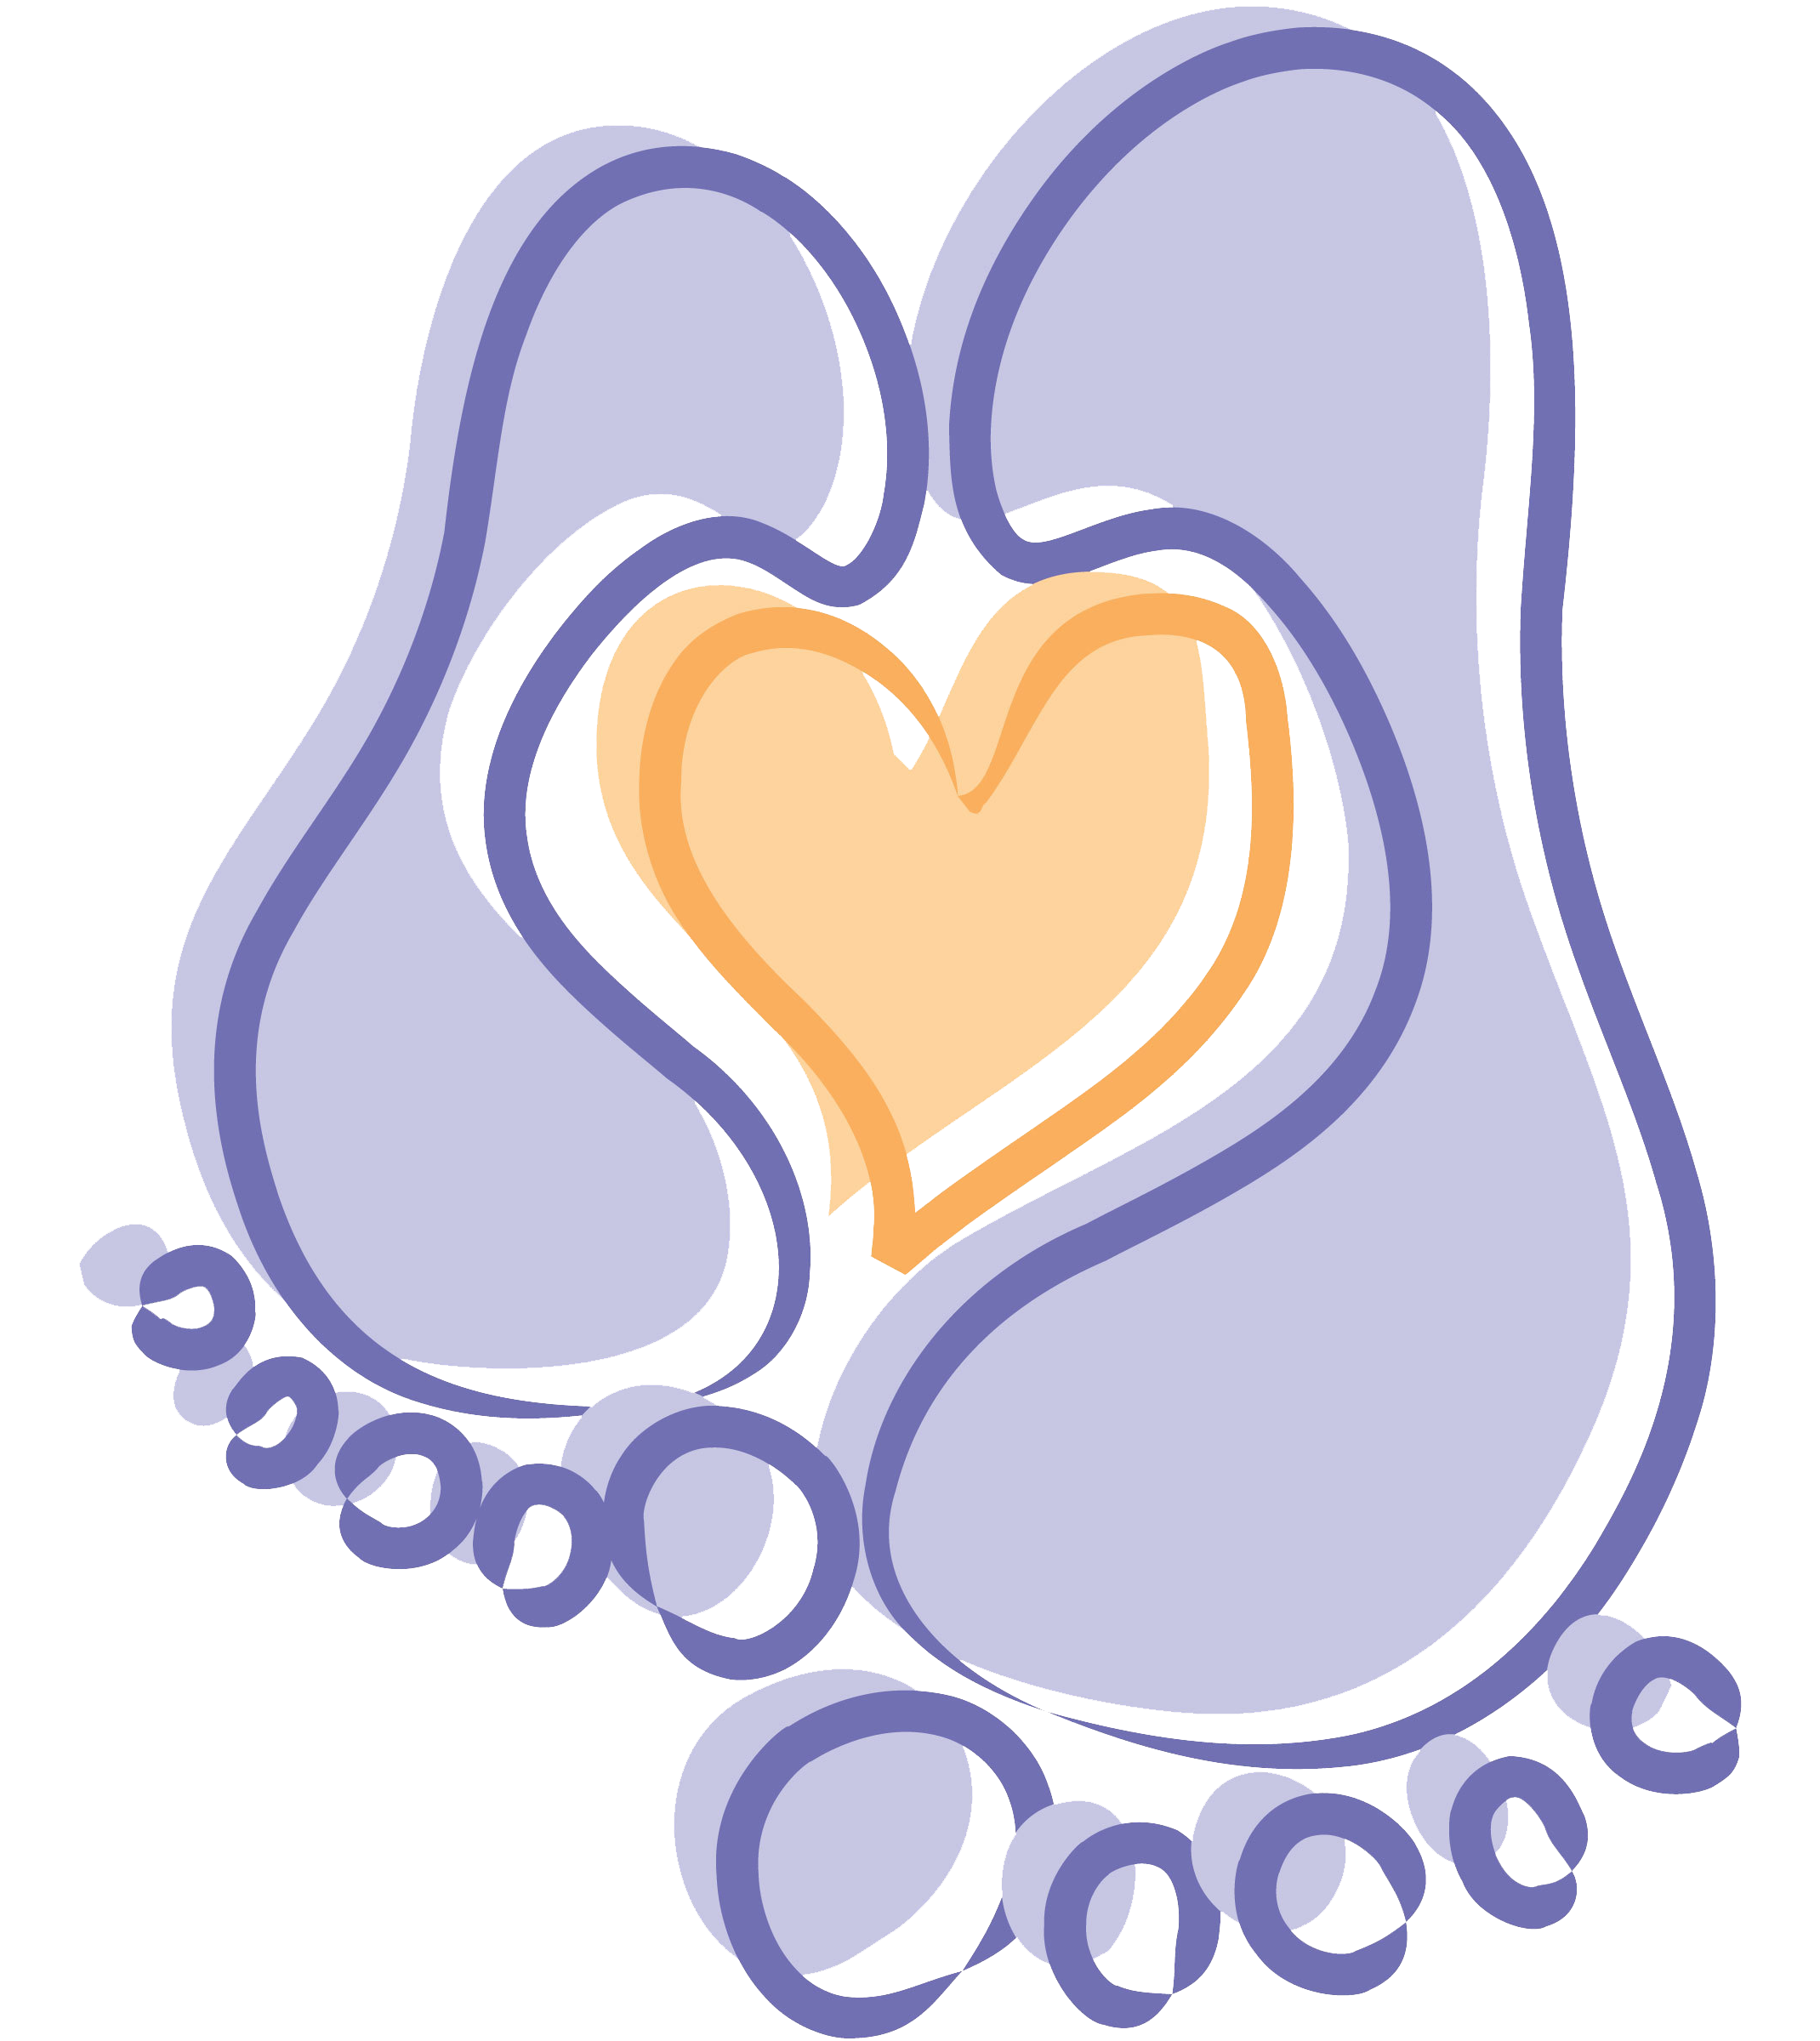 Heartsong maternity services information. Feet clipart baby heart